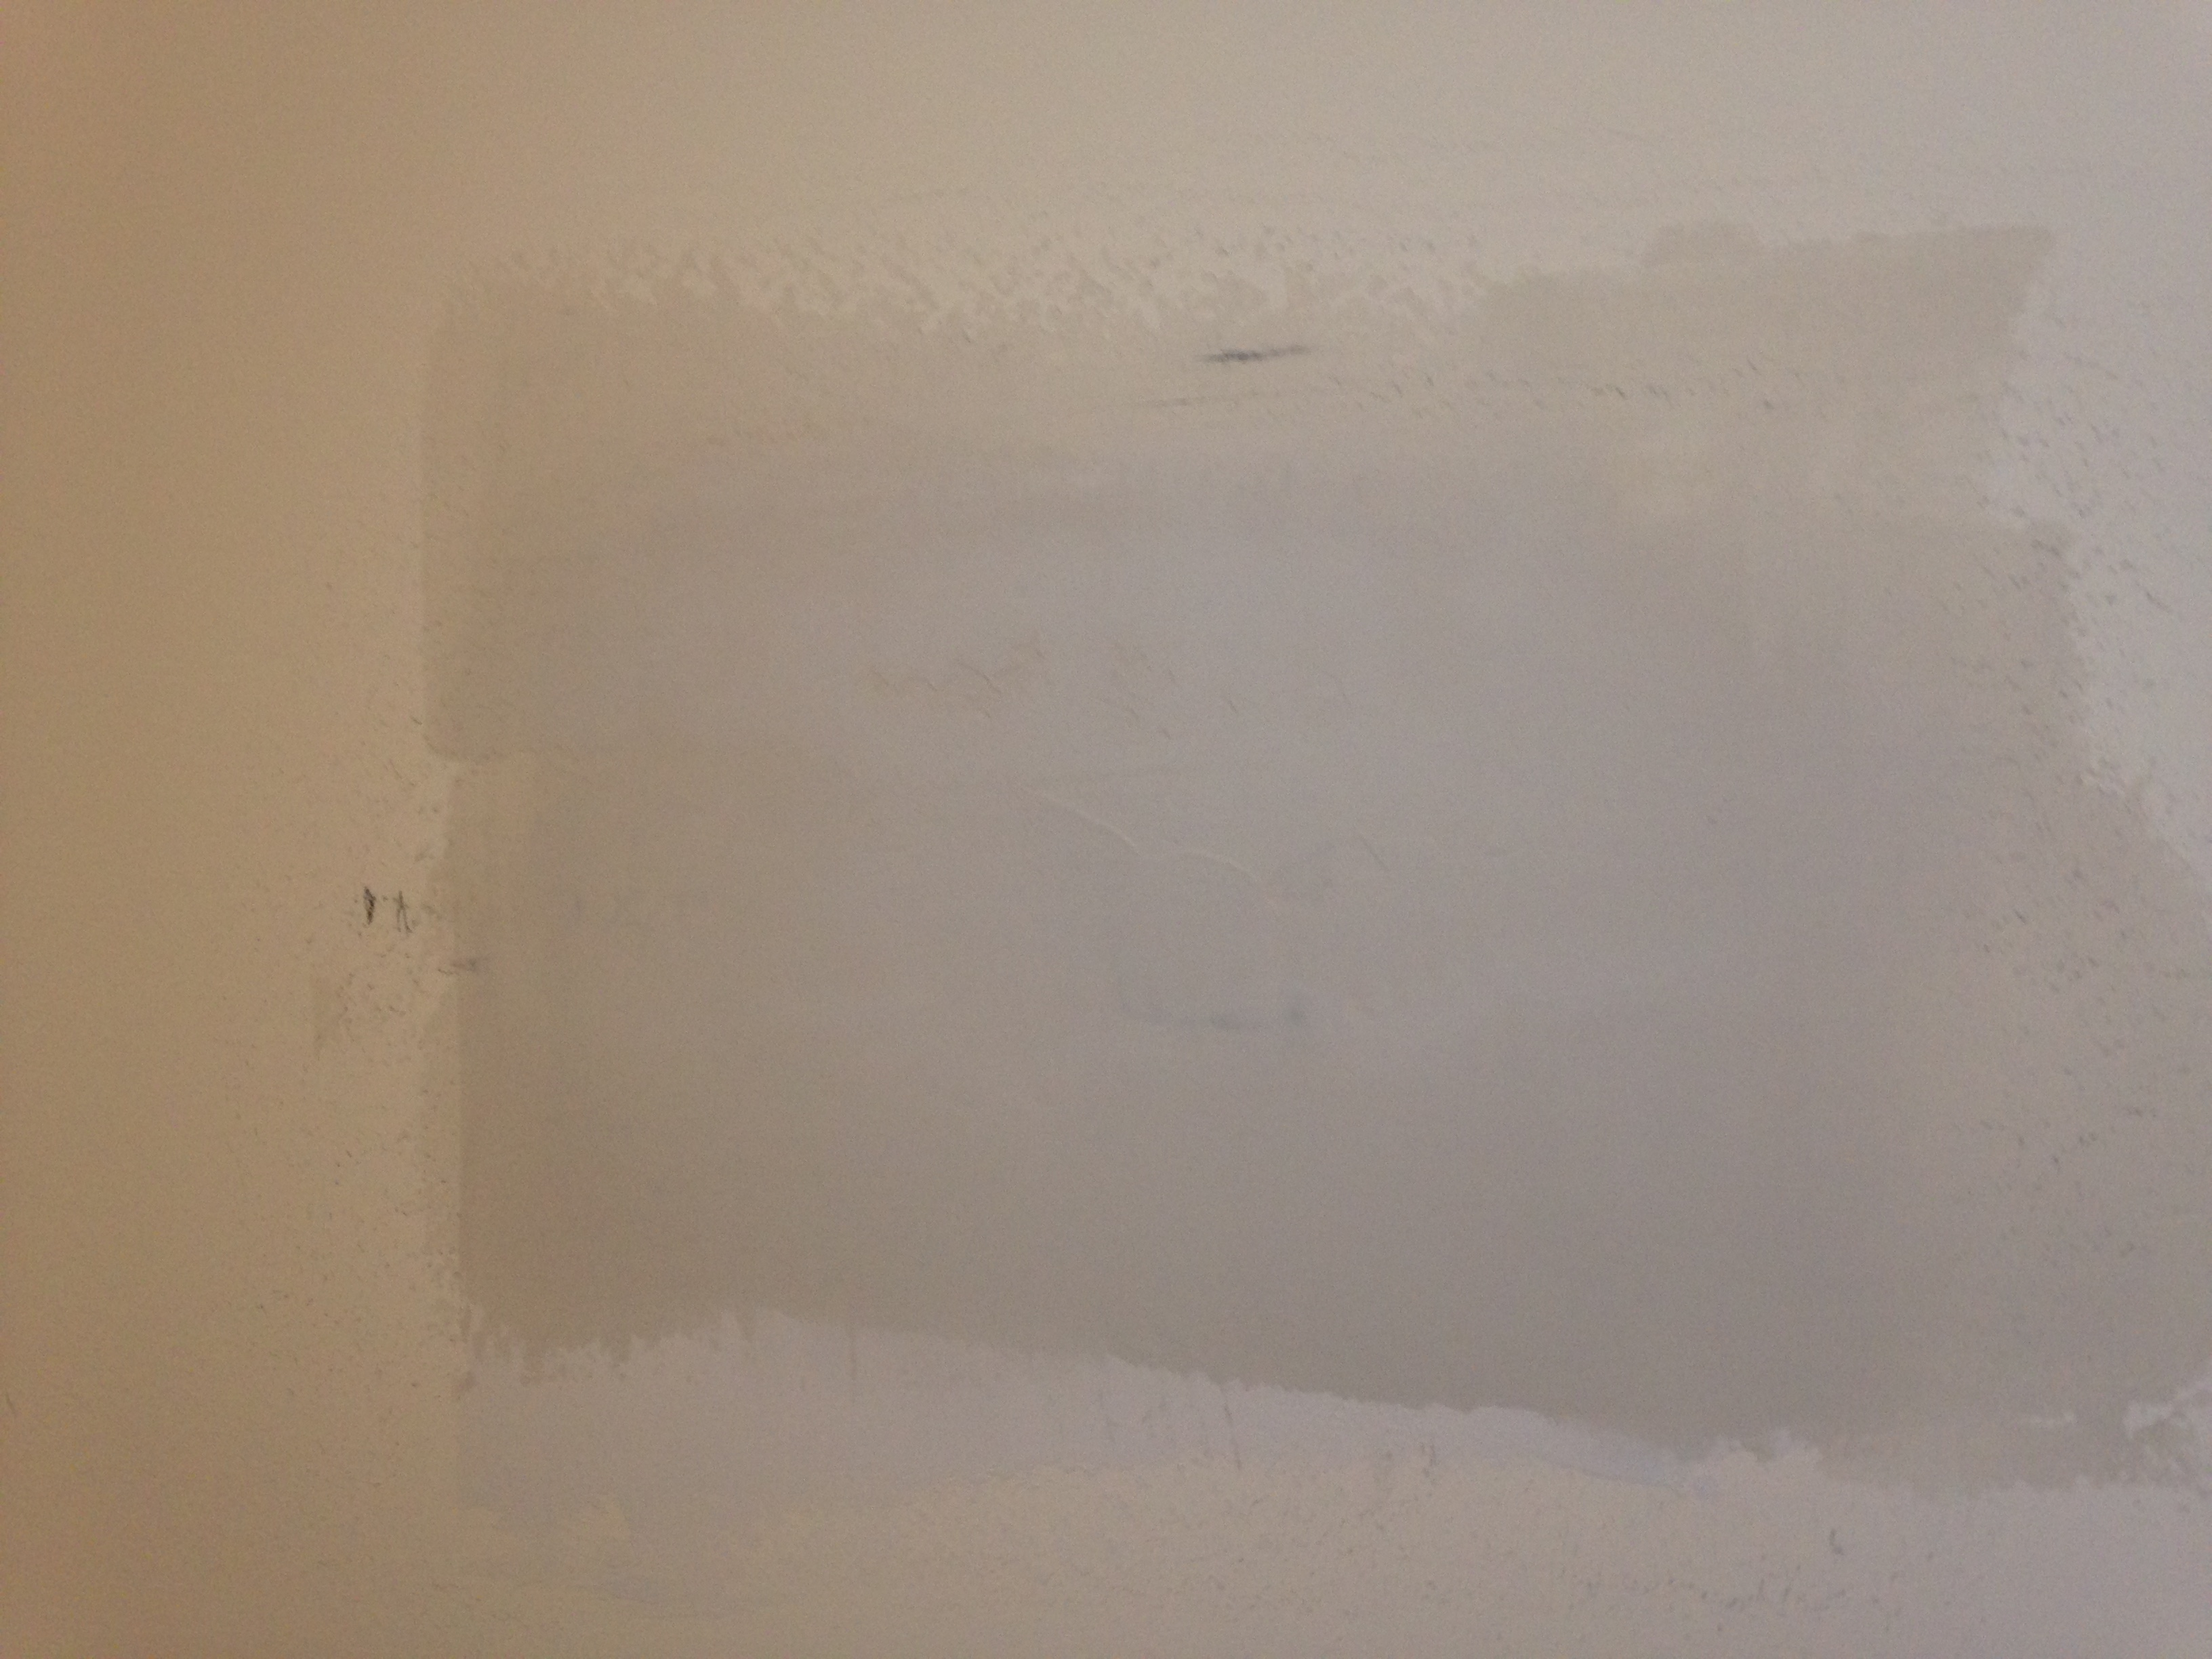 No Tape Drywall Patch-img_0566.jpg